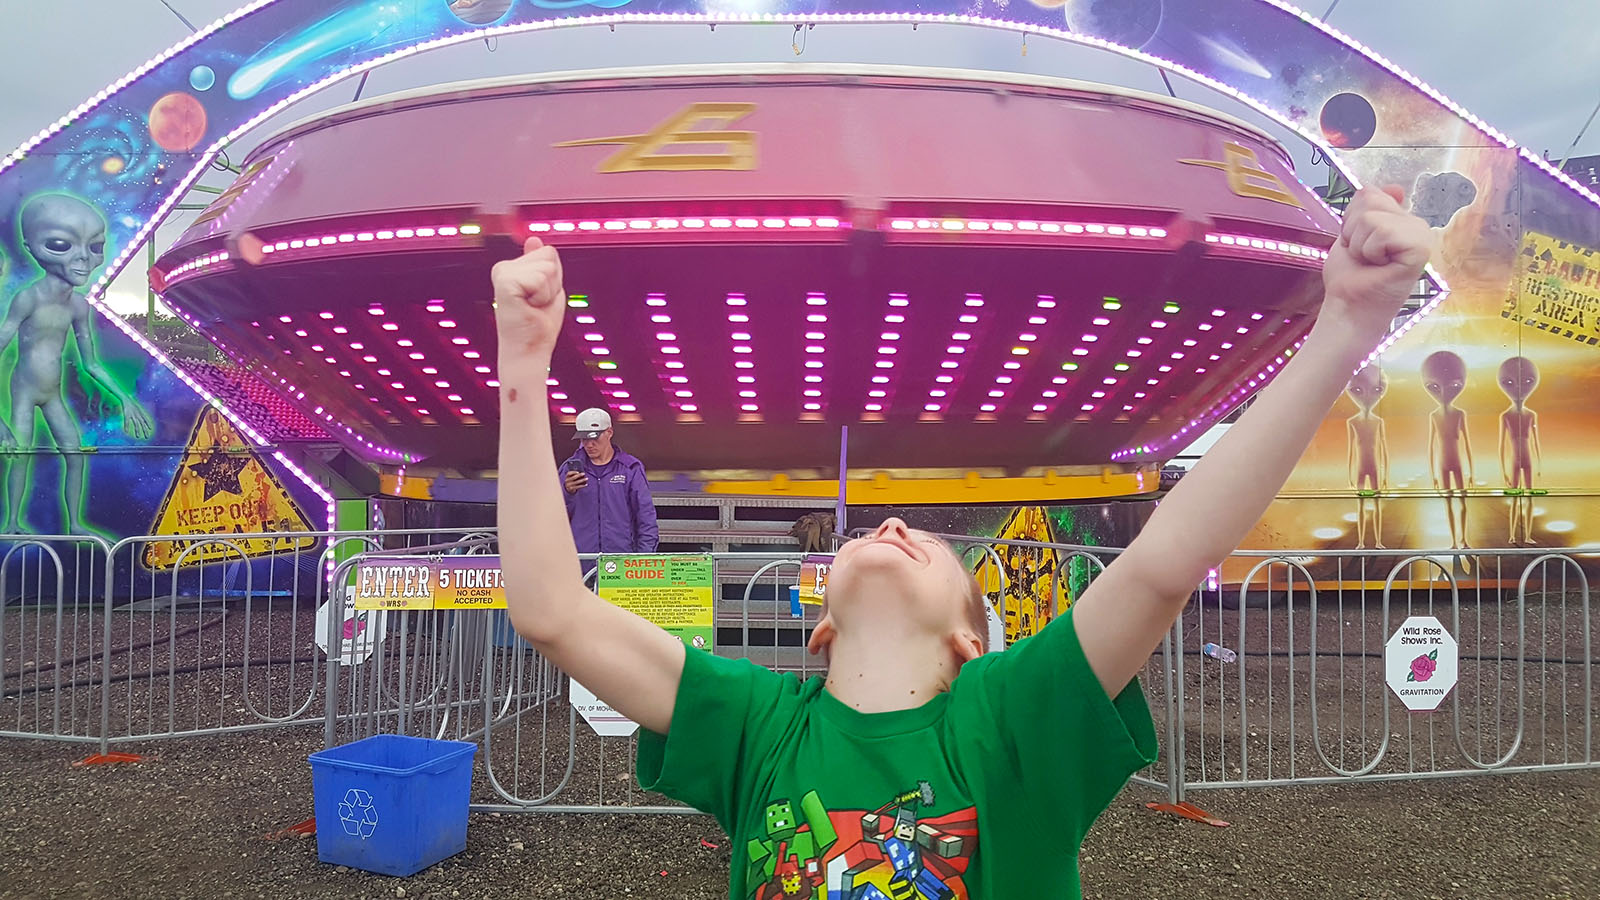 Noah after conquering the ride at the carnival which he had been most afraid to try, and which then became his favourite.